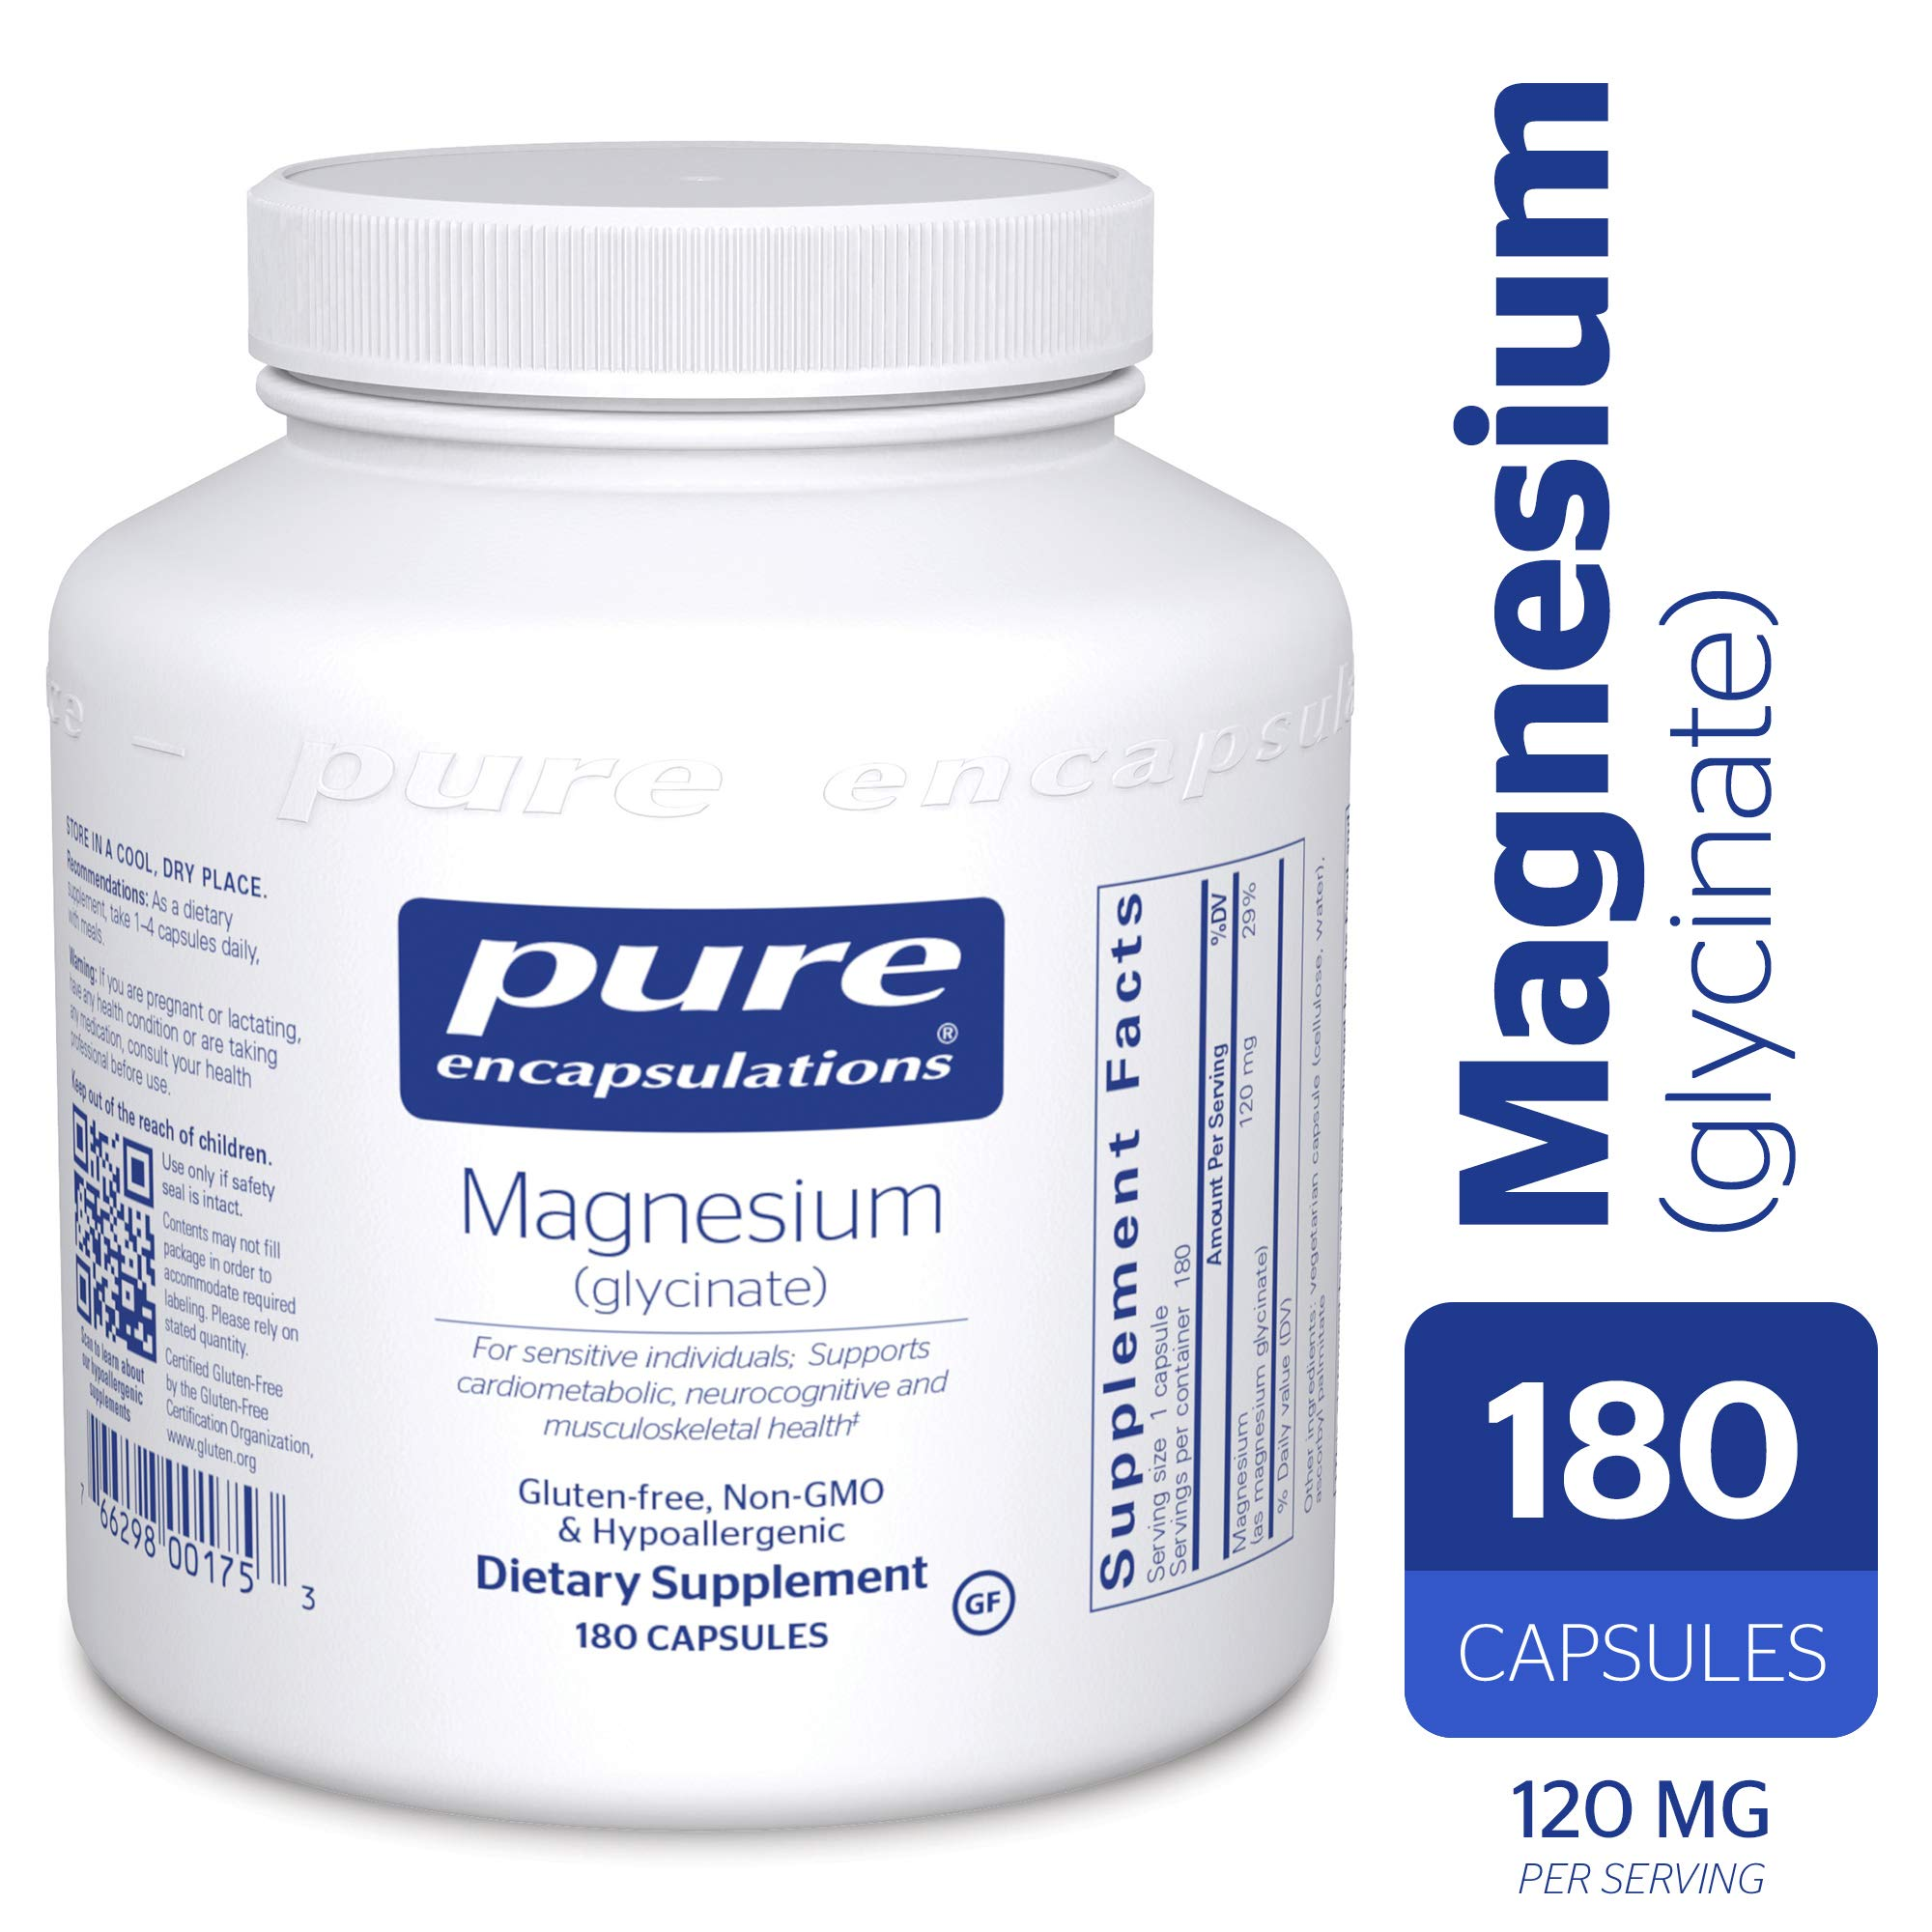 Pure Encapsulations - Magnesium (Glycinate) - Supports Enzymatic and Physiological Functions* - 180 Count by Pure Encapsulations